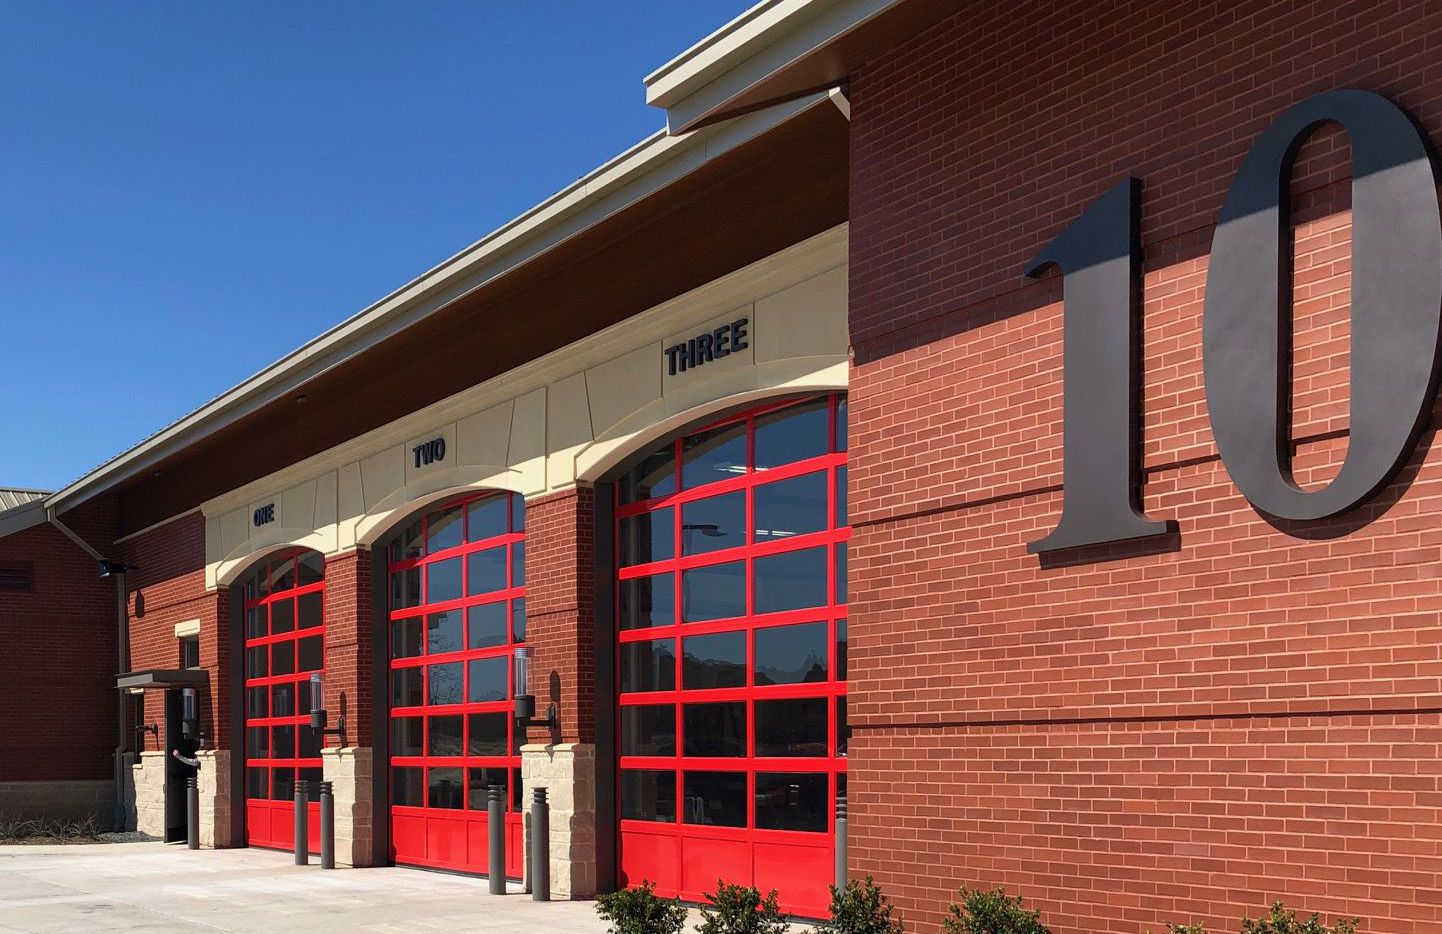 The McKinney Fire Department's Fire Station 10 opened Thursday, April 2, 2020. McKinney firefighters and EMS personnel will administer COVID-19 testing to ever resident of a long-term care facility Friday and train first responders from neighboring cities on the process.